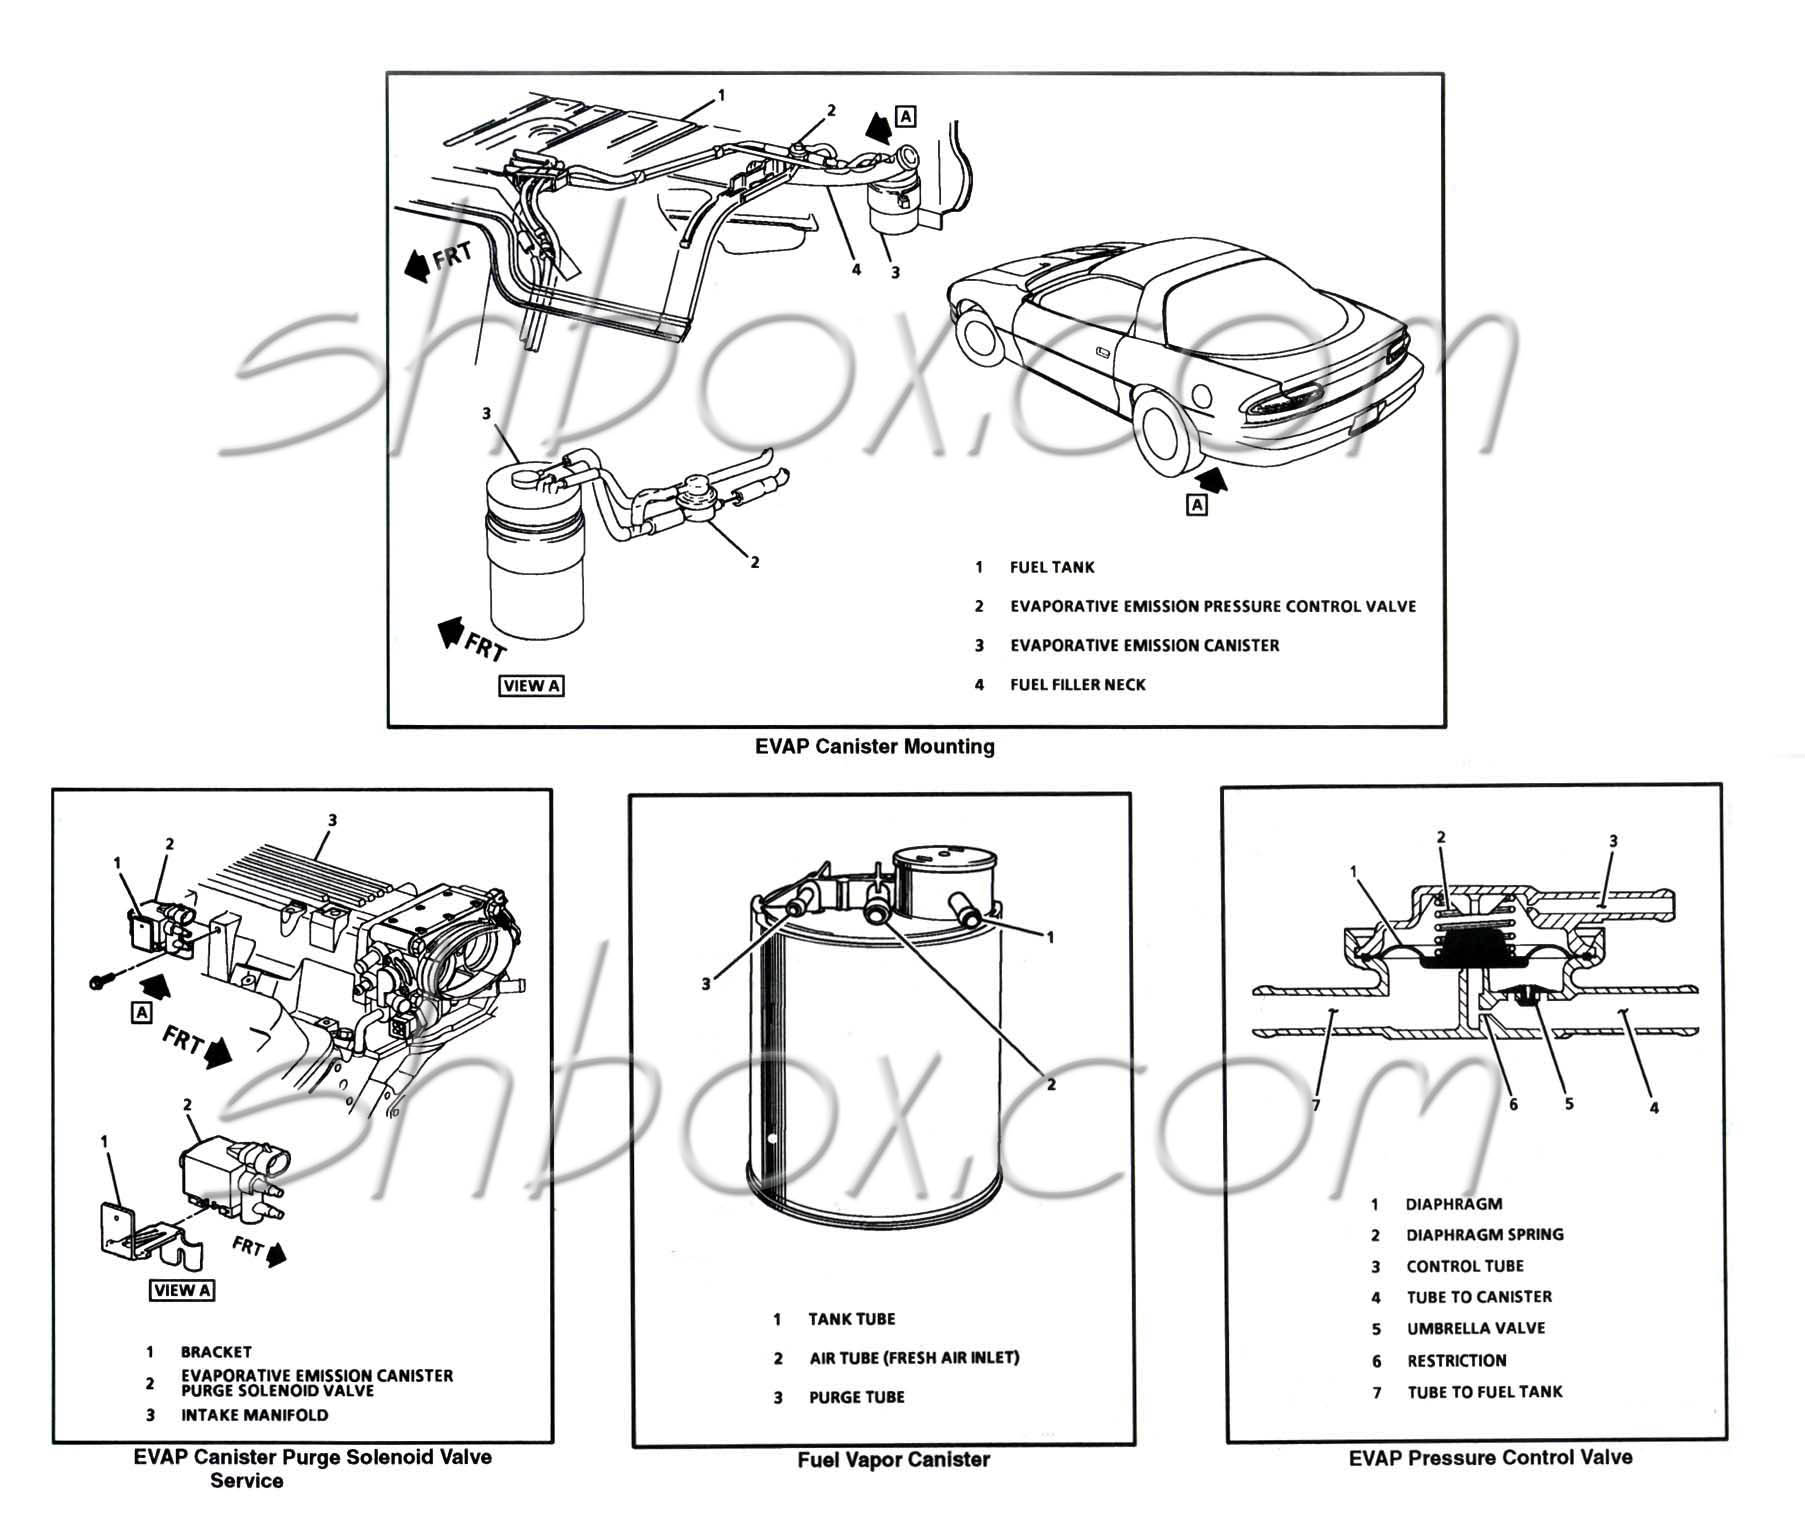 hight resolution of evap system components pre 1996